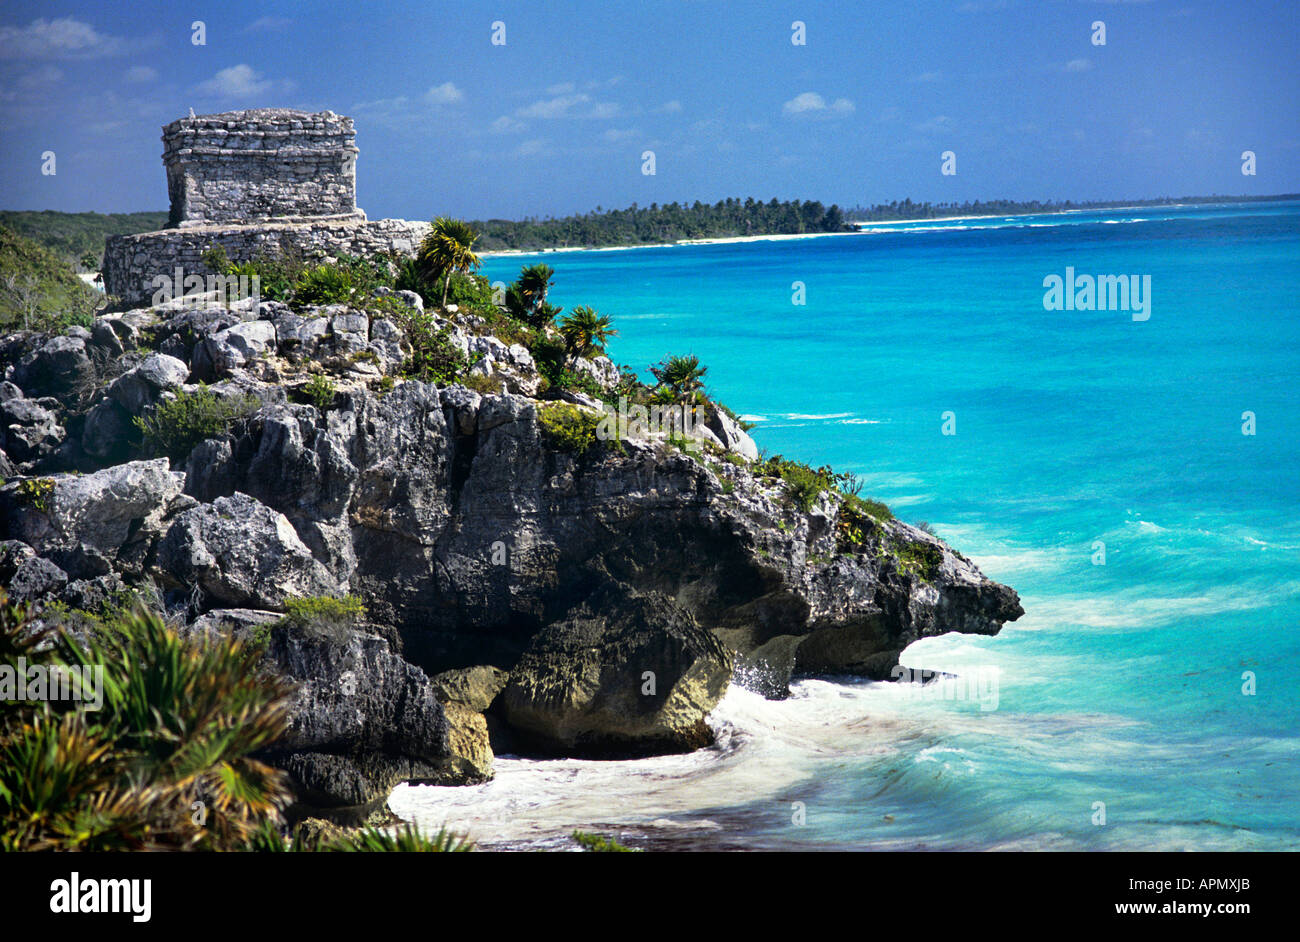 The walled ruins of Tulum settled between AD 900 1500 during the post Classic period set on a craggy cliff overlooking the sparkling turquoise waters of the Caribbean with white capped waves crashing around the rocky coast below - Stock Image